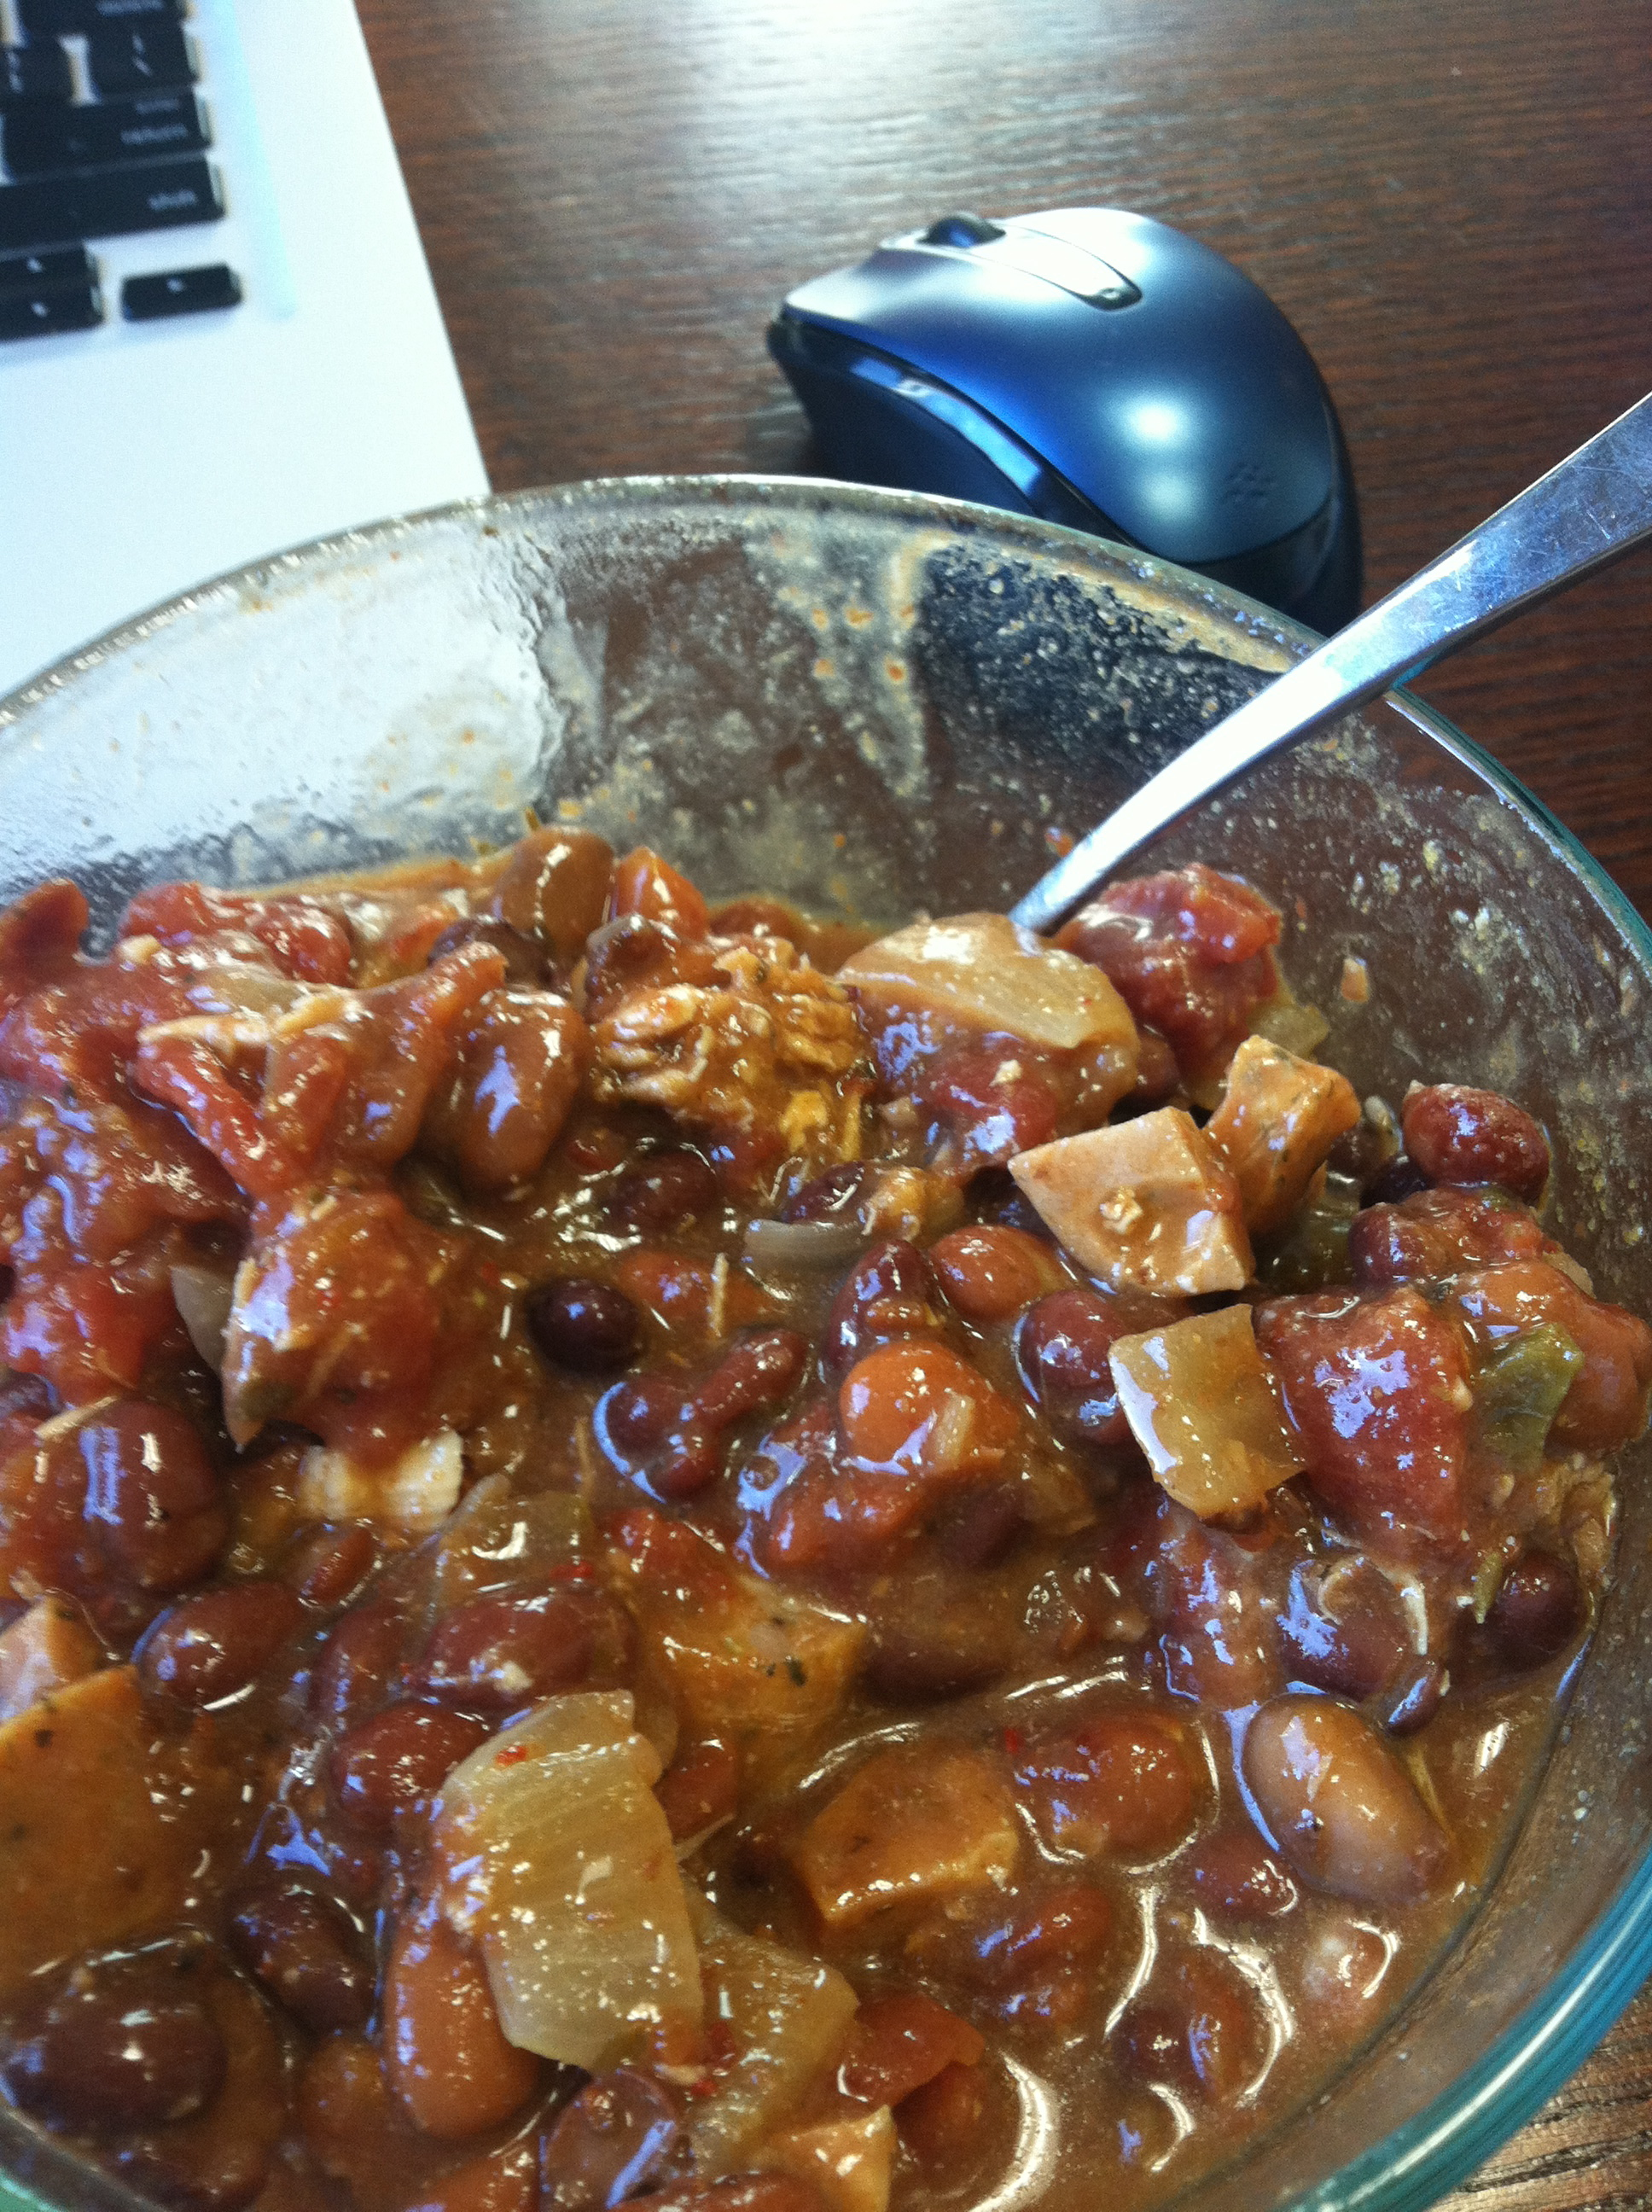 Leftover chili is perfect for lunch the next day!